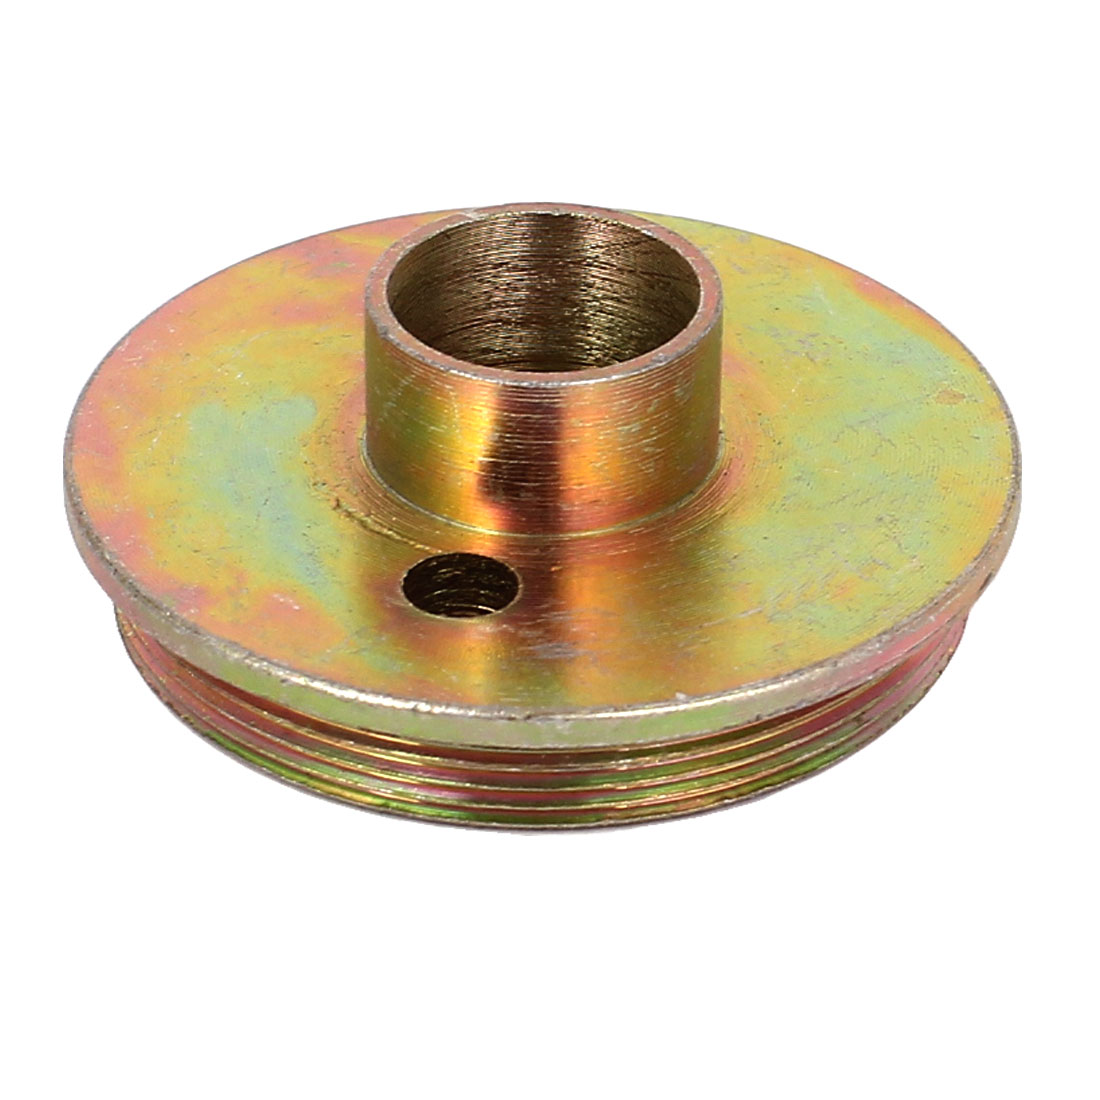 40mm Dia Thread 14mm Bore Metal Trend Guide Bushes for Makita 3600H Router